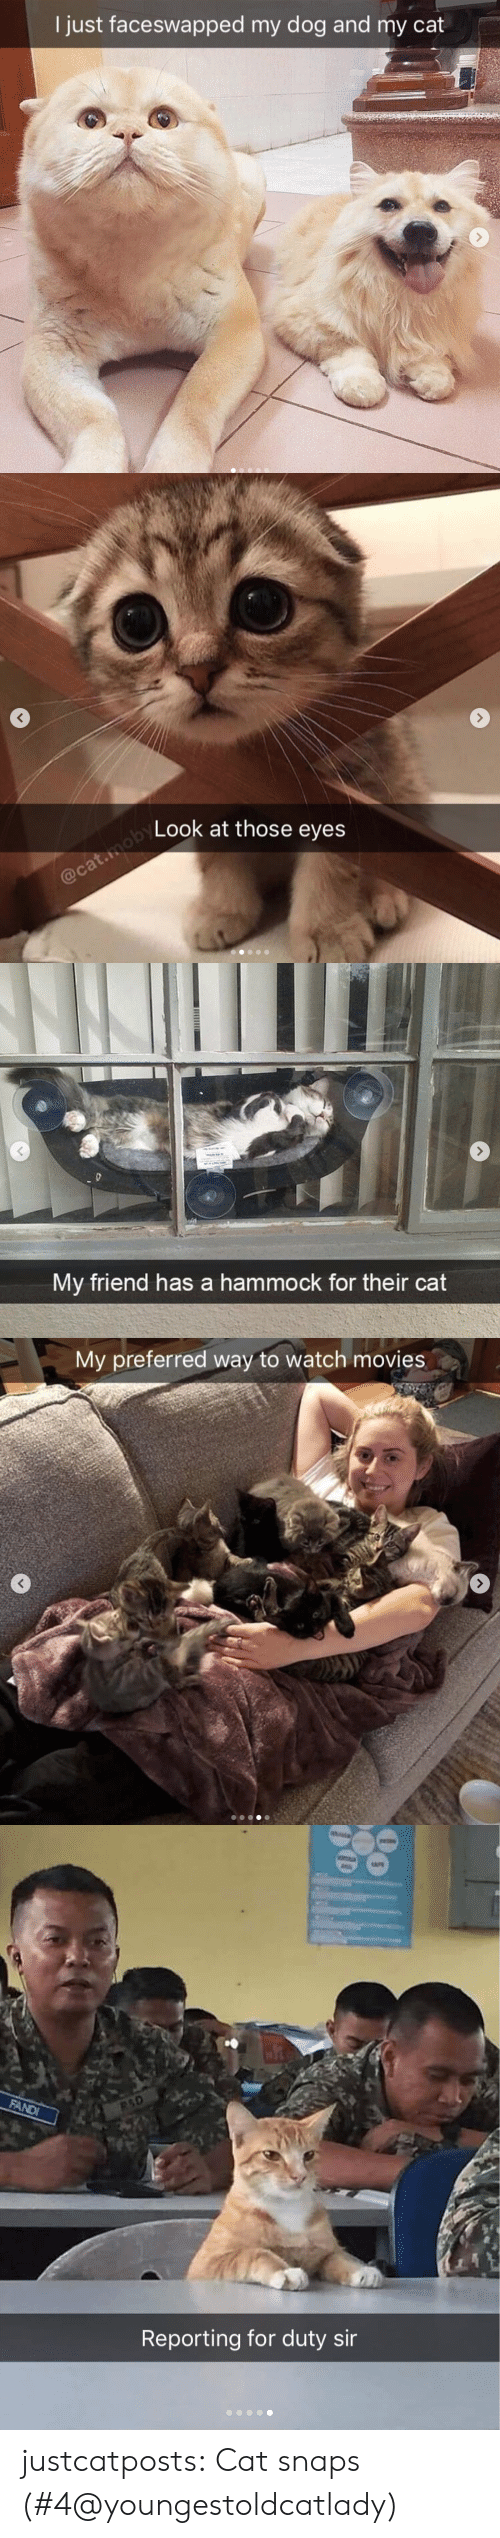 Instagram, Movies, and Target: I just faceswapped my dog and my cat   Look at those eyes   My friend has a hammock for their cat   My preferred way to watch movies   Reporting for duty sir justcatposts: Cat snaps (#4@youngestoldcatlady)